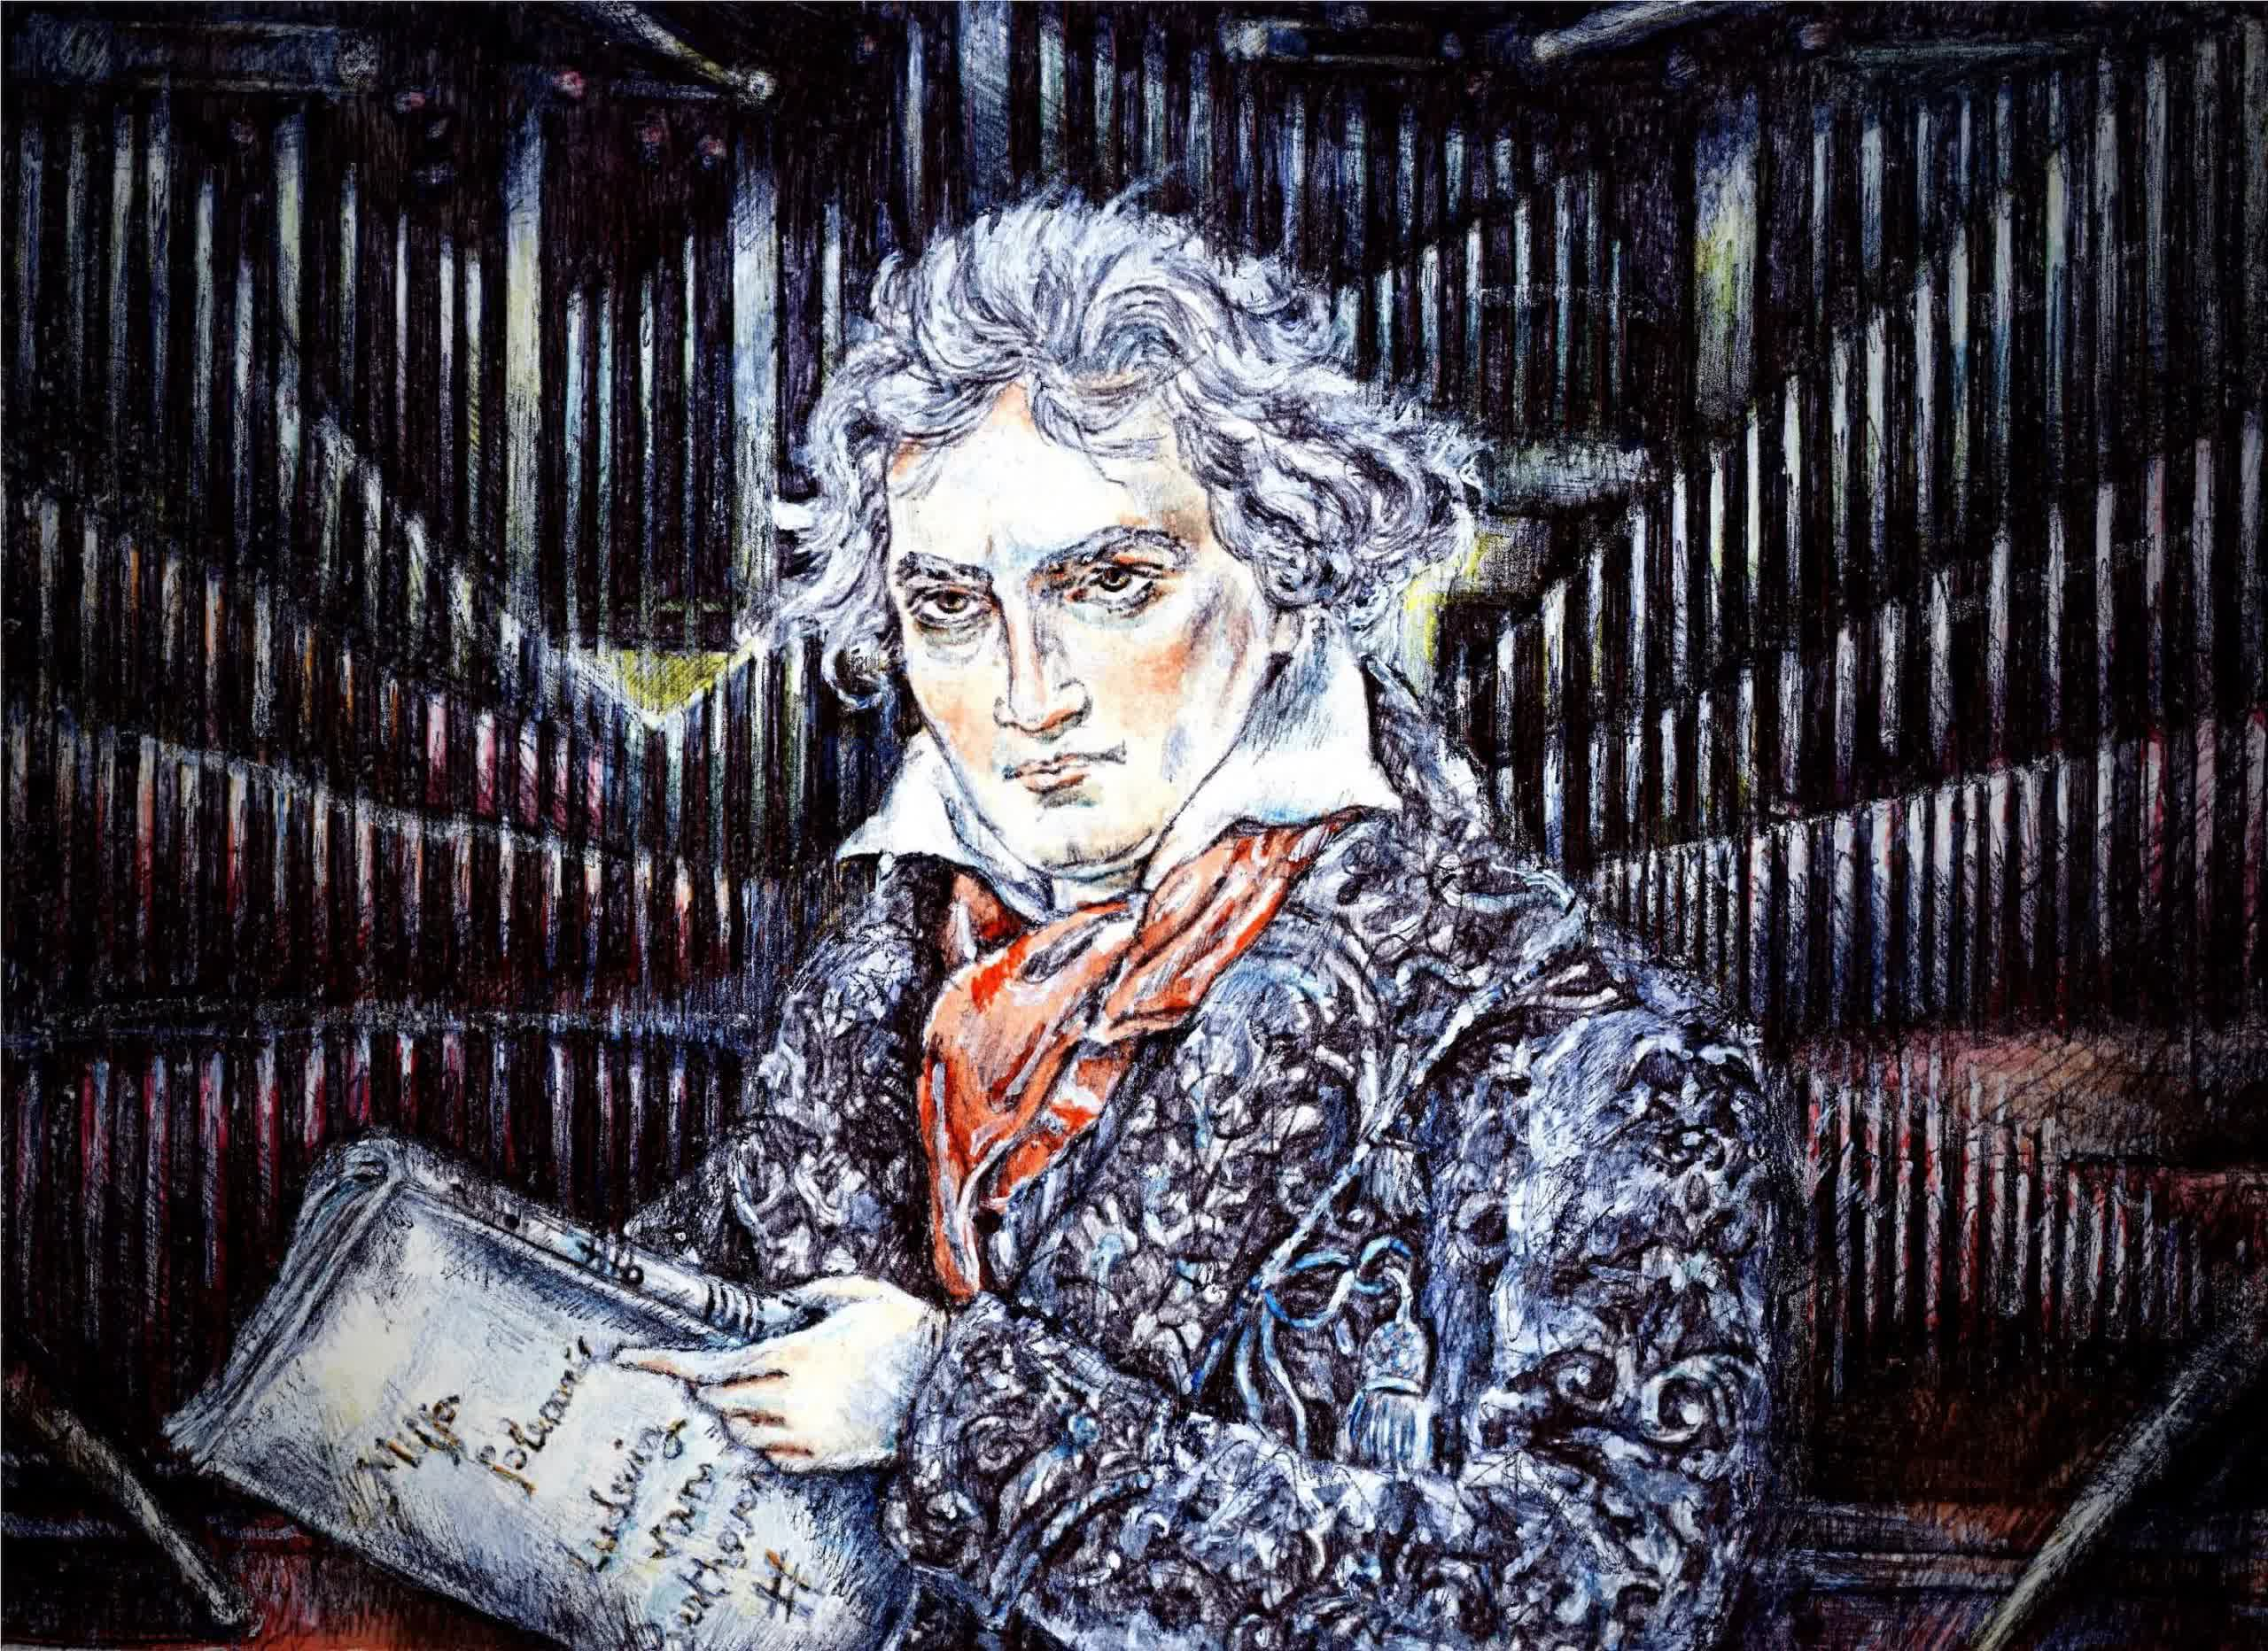 Music scholars and computer scientists completed Beethoven's Tenth Symphony aided by machine learning